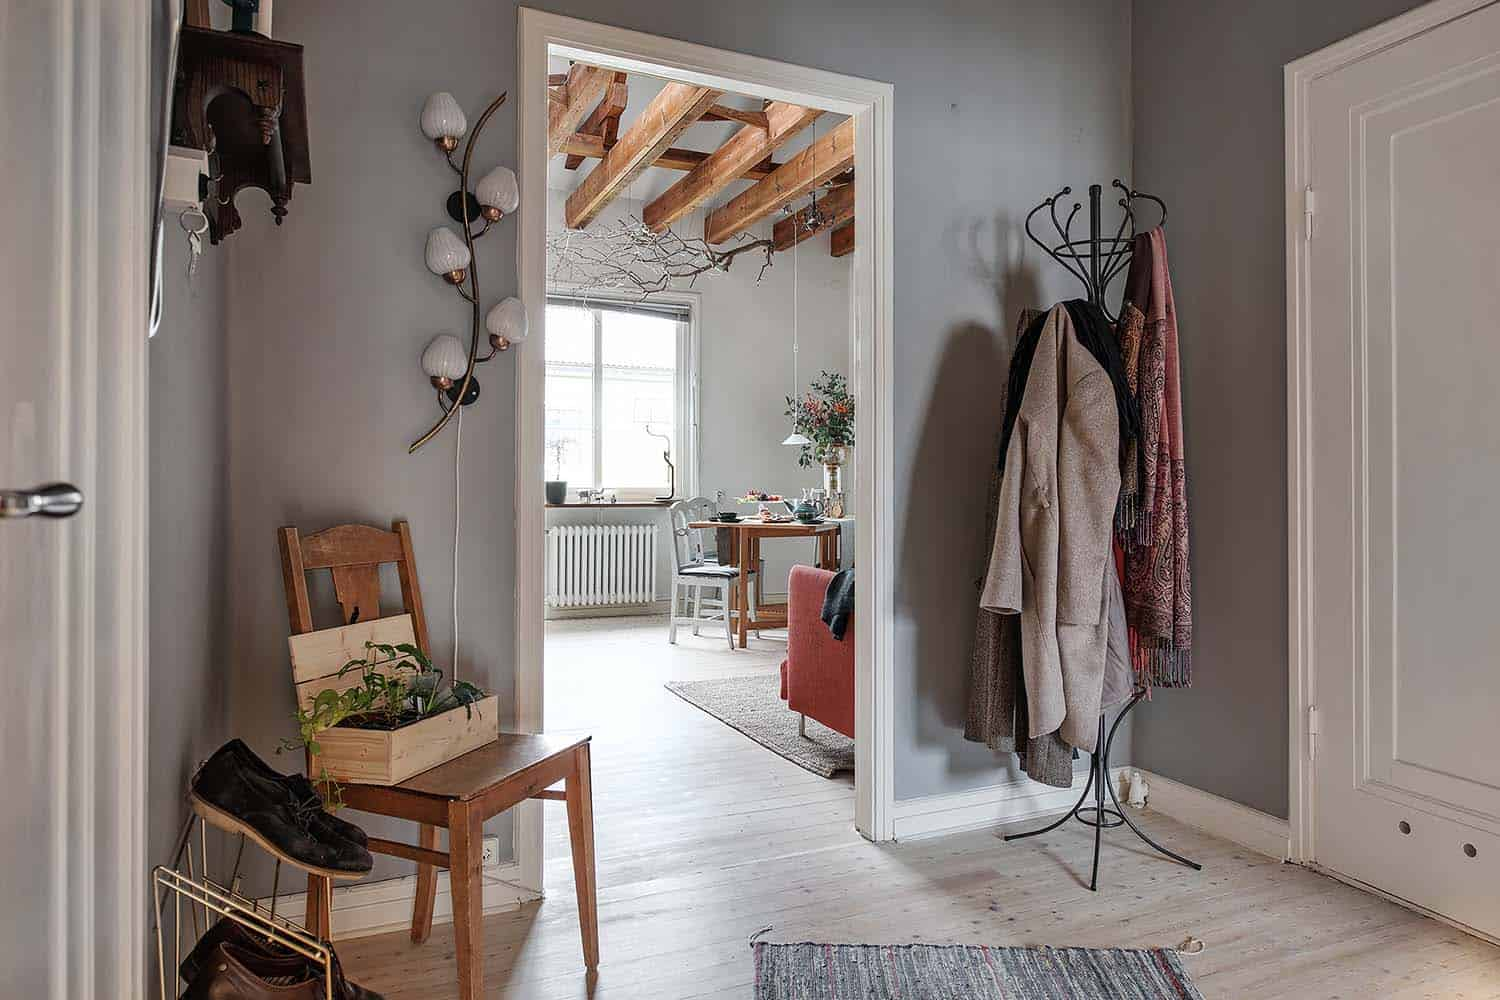 Charming One Bedroom Duplex Apartment With Cozy Layout In Sweden